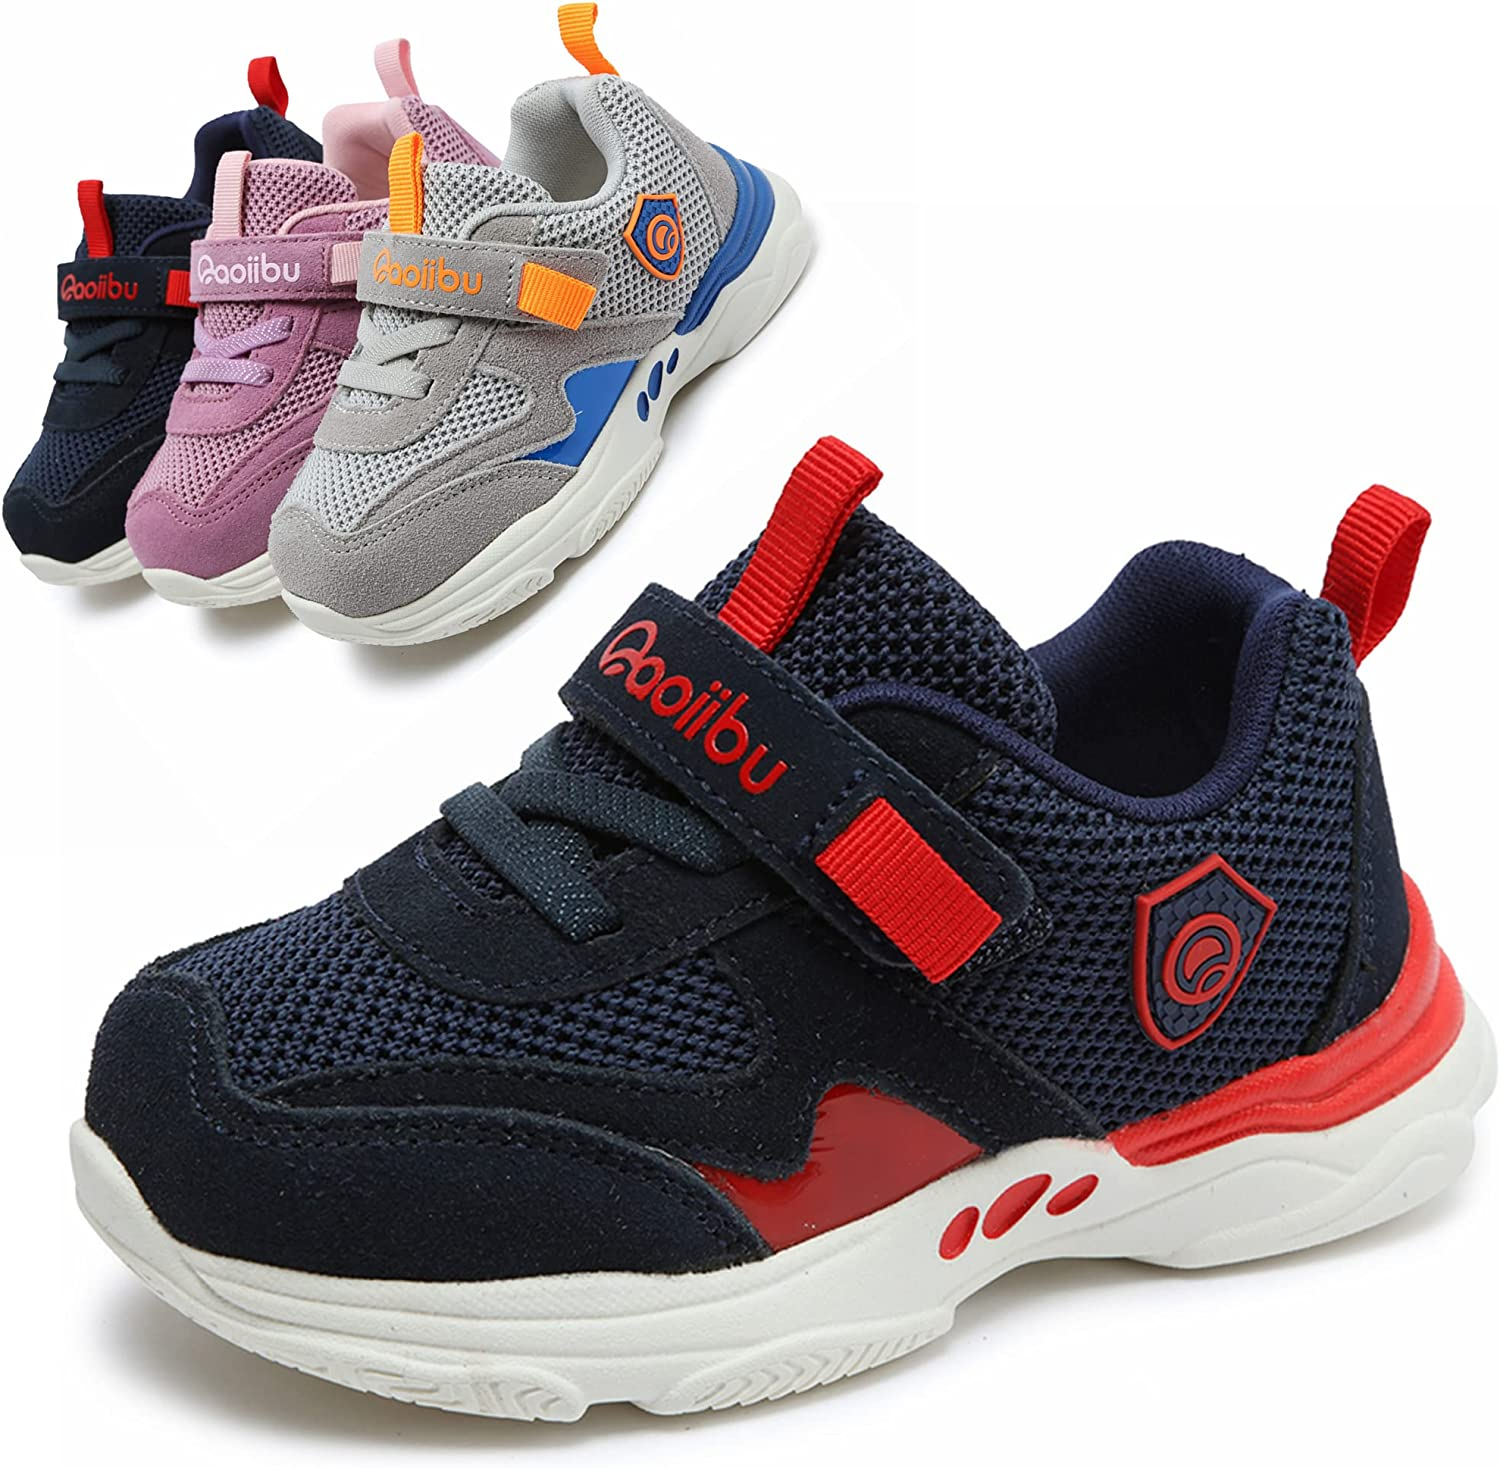 Toddler Little Kids Shoes - Toddler 5 to Little Kids 11 Hook and Loop Strap Breathable Washable Sports Athletic Walking Running Sneakers for Unisex-Child Boys Girls